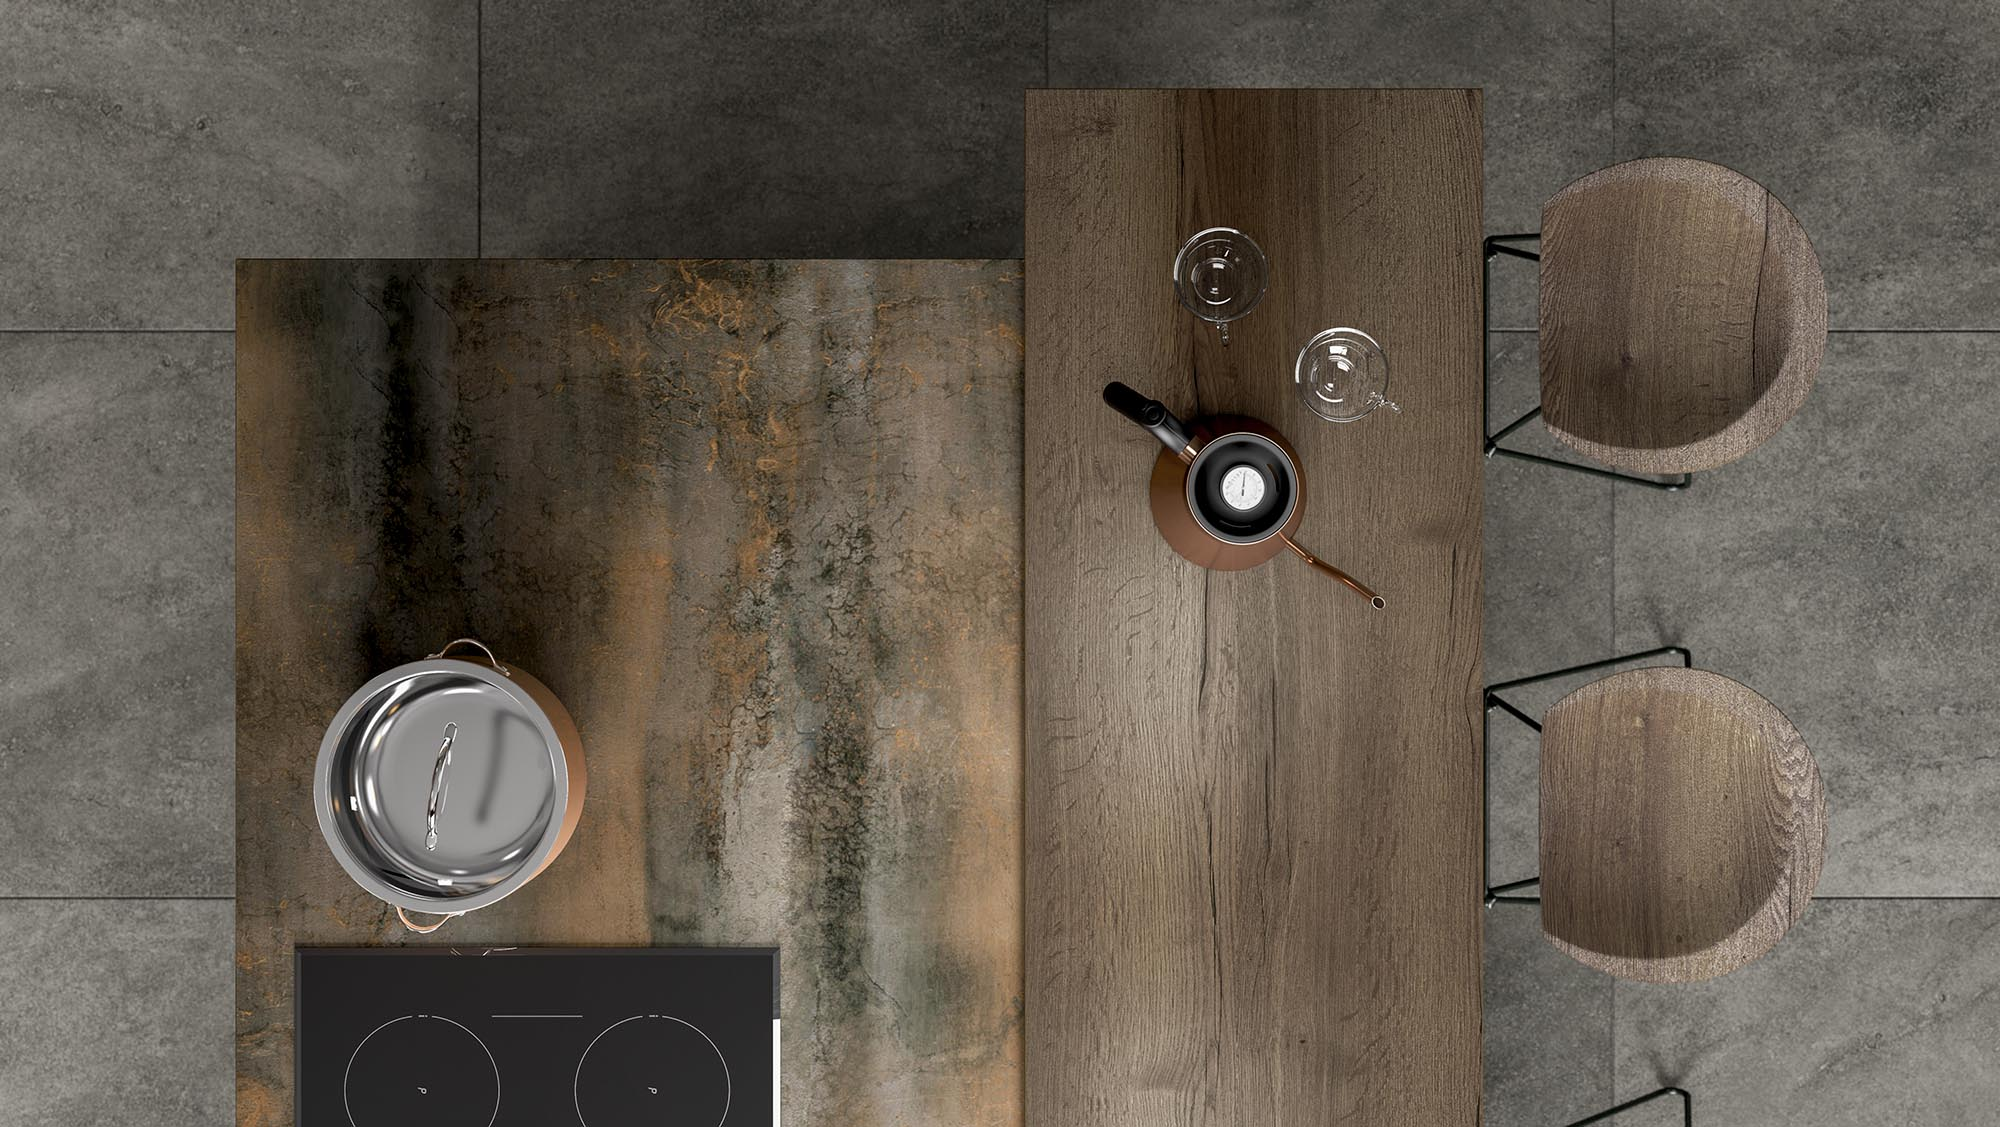 Multi Textured Kitchen Imagery 1